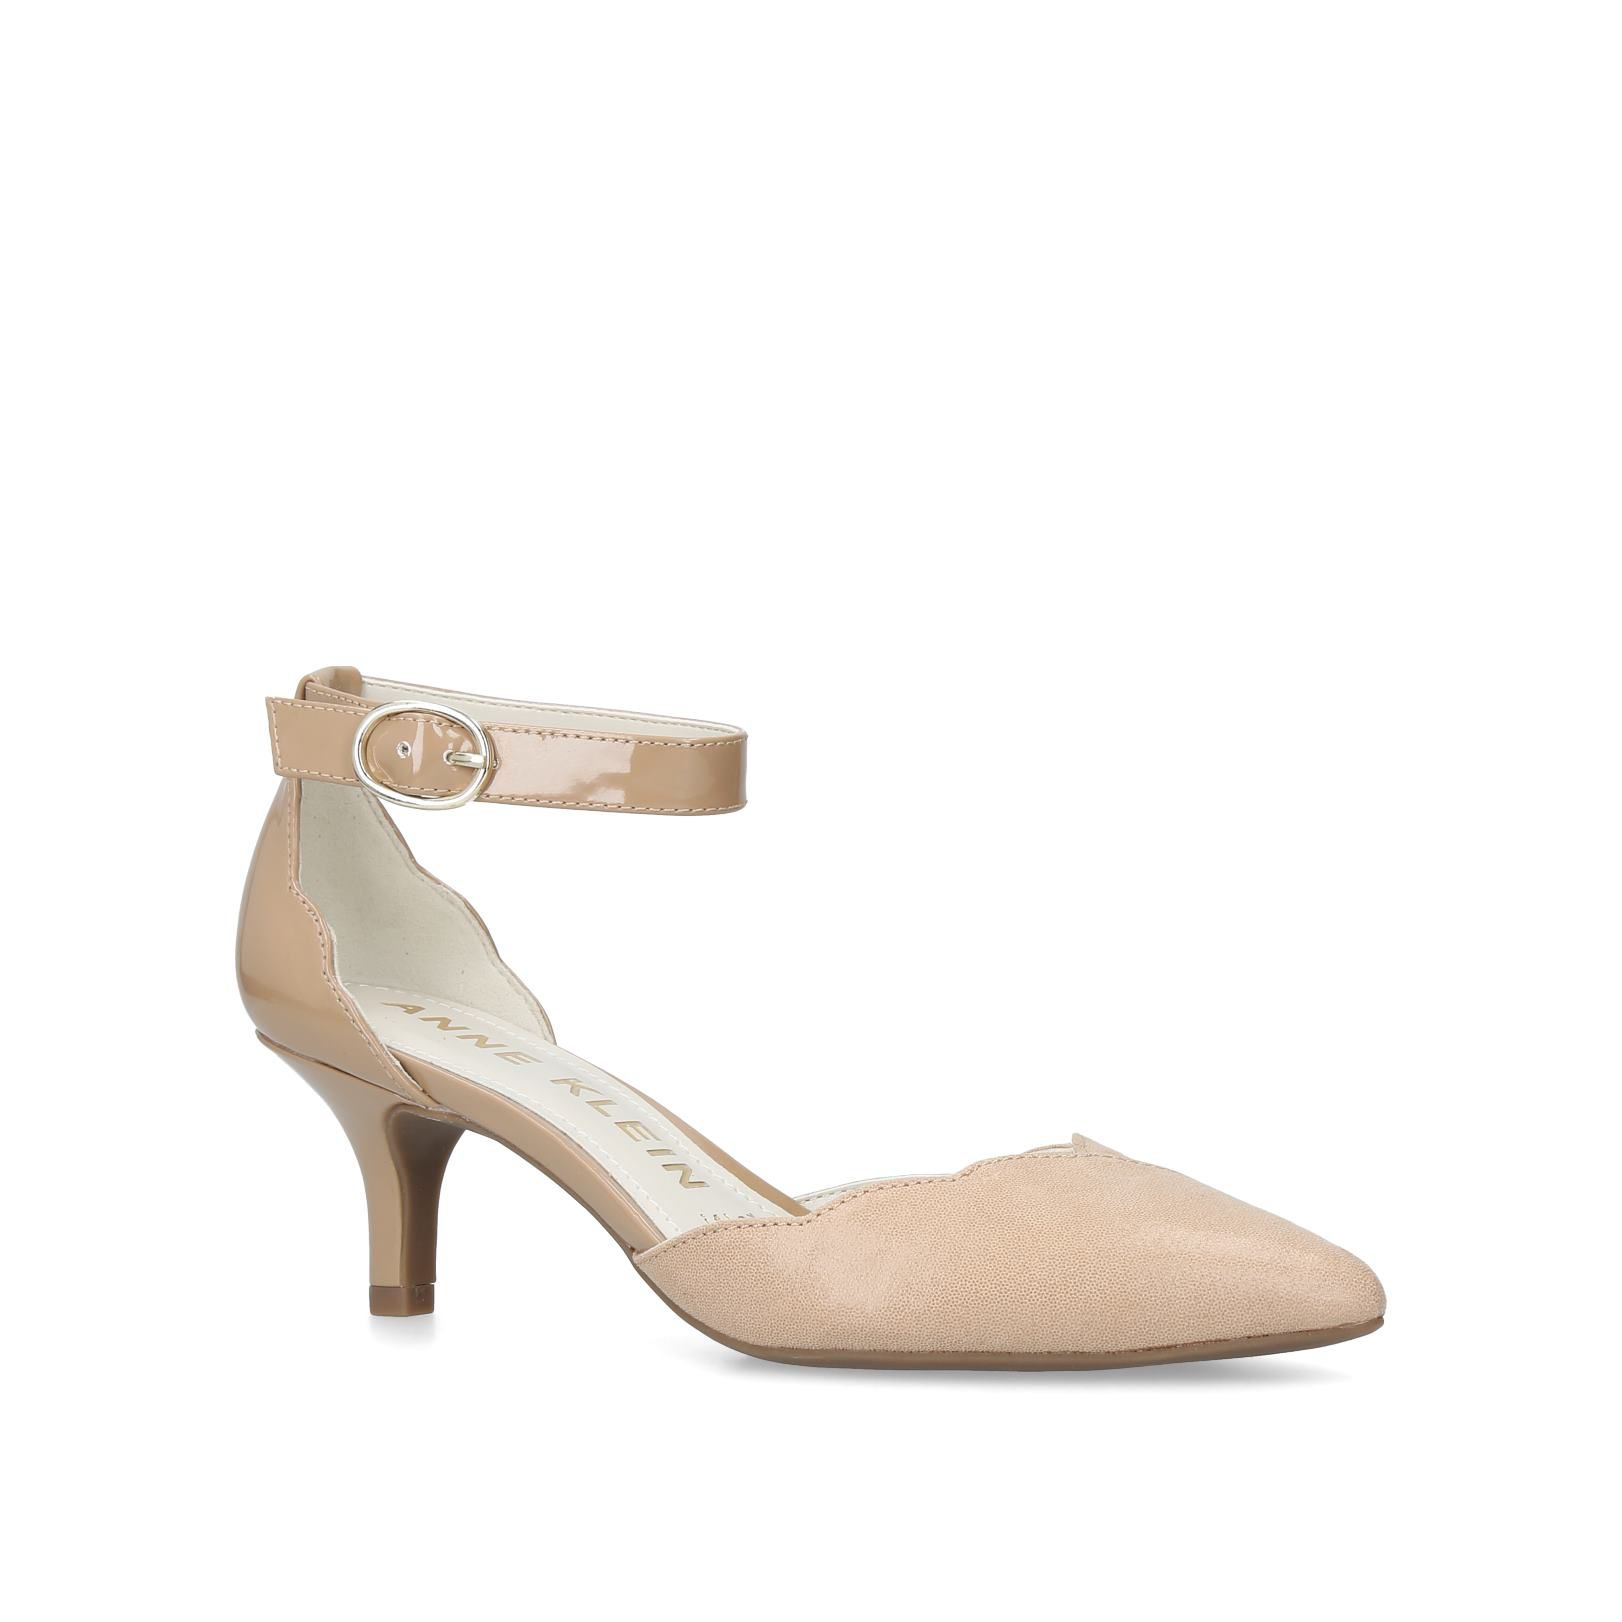 Anne Klein Fonda Courts, White